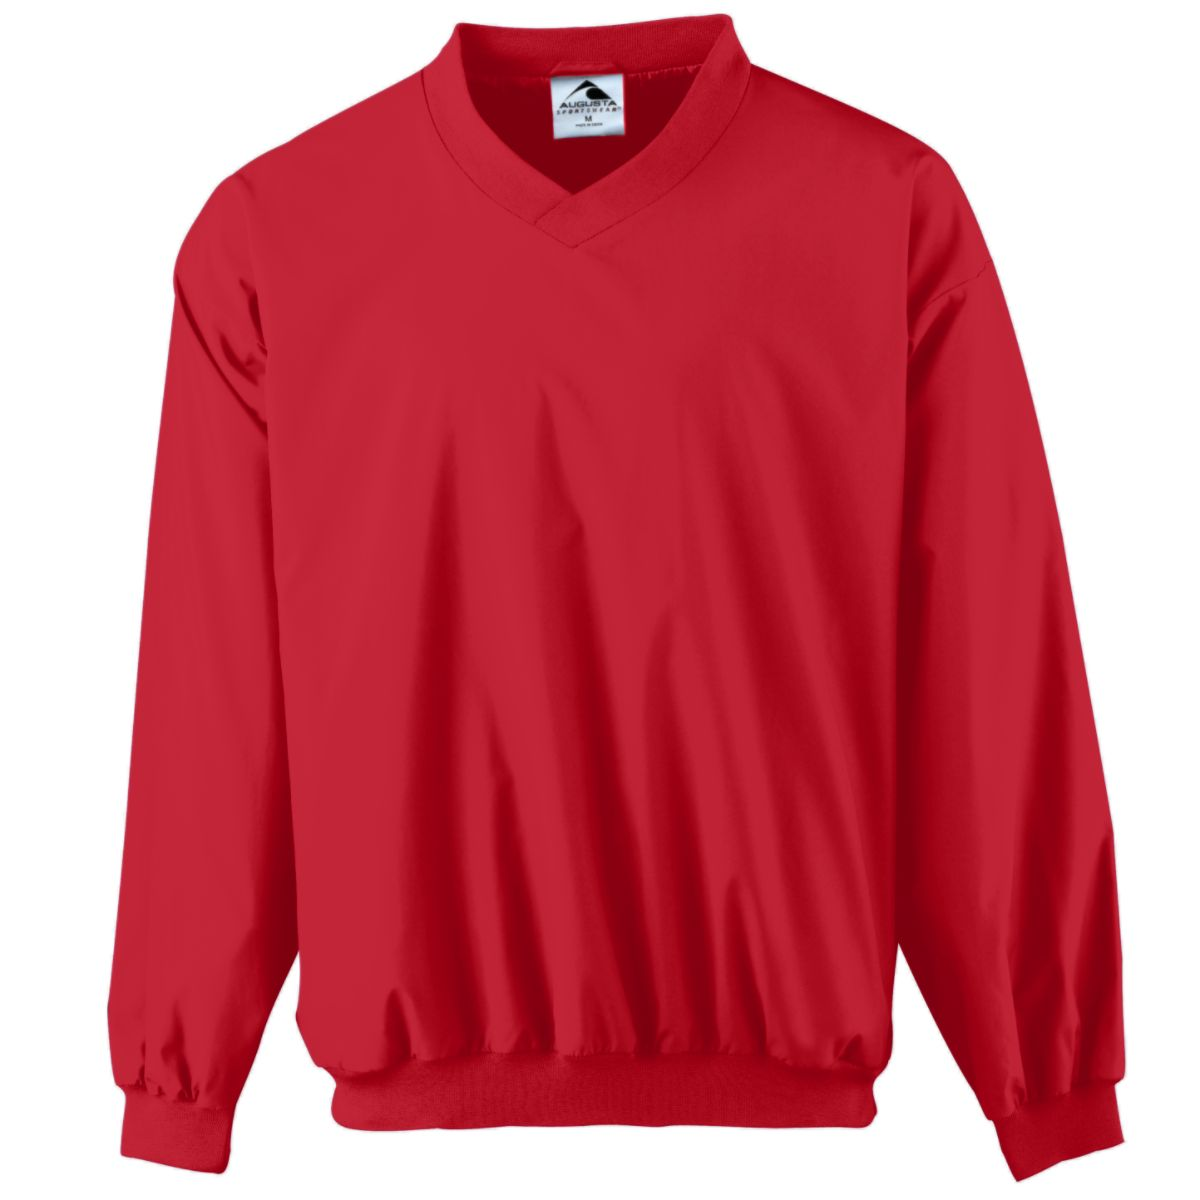 Augusta Micro Poly Windshirt/Lined Red S - image 1 de 1